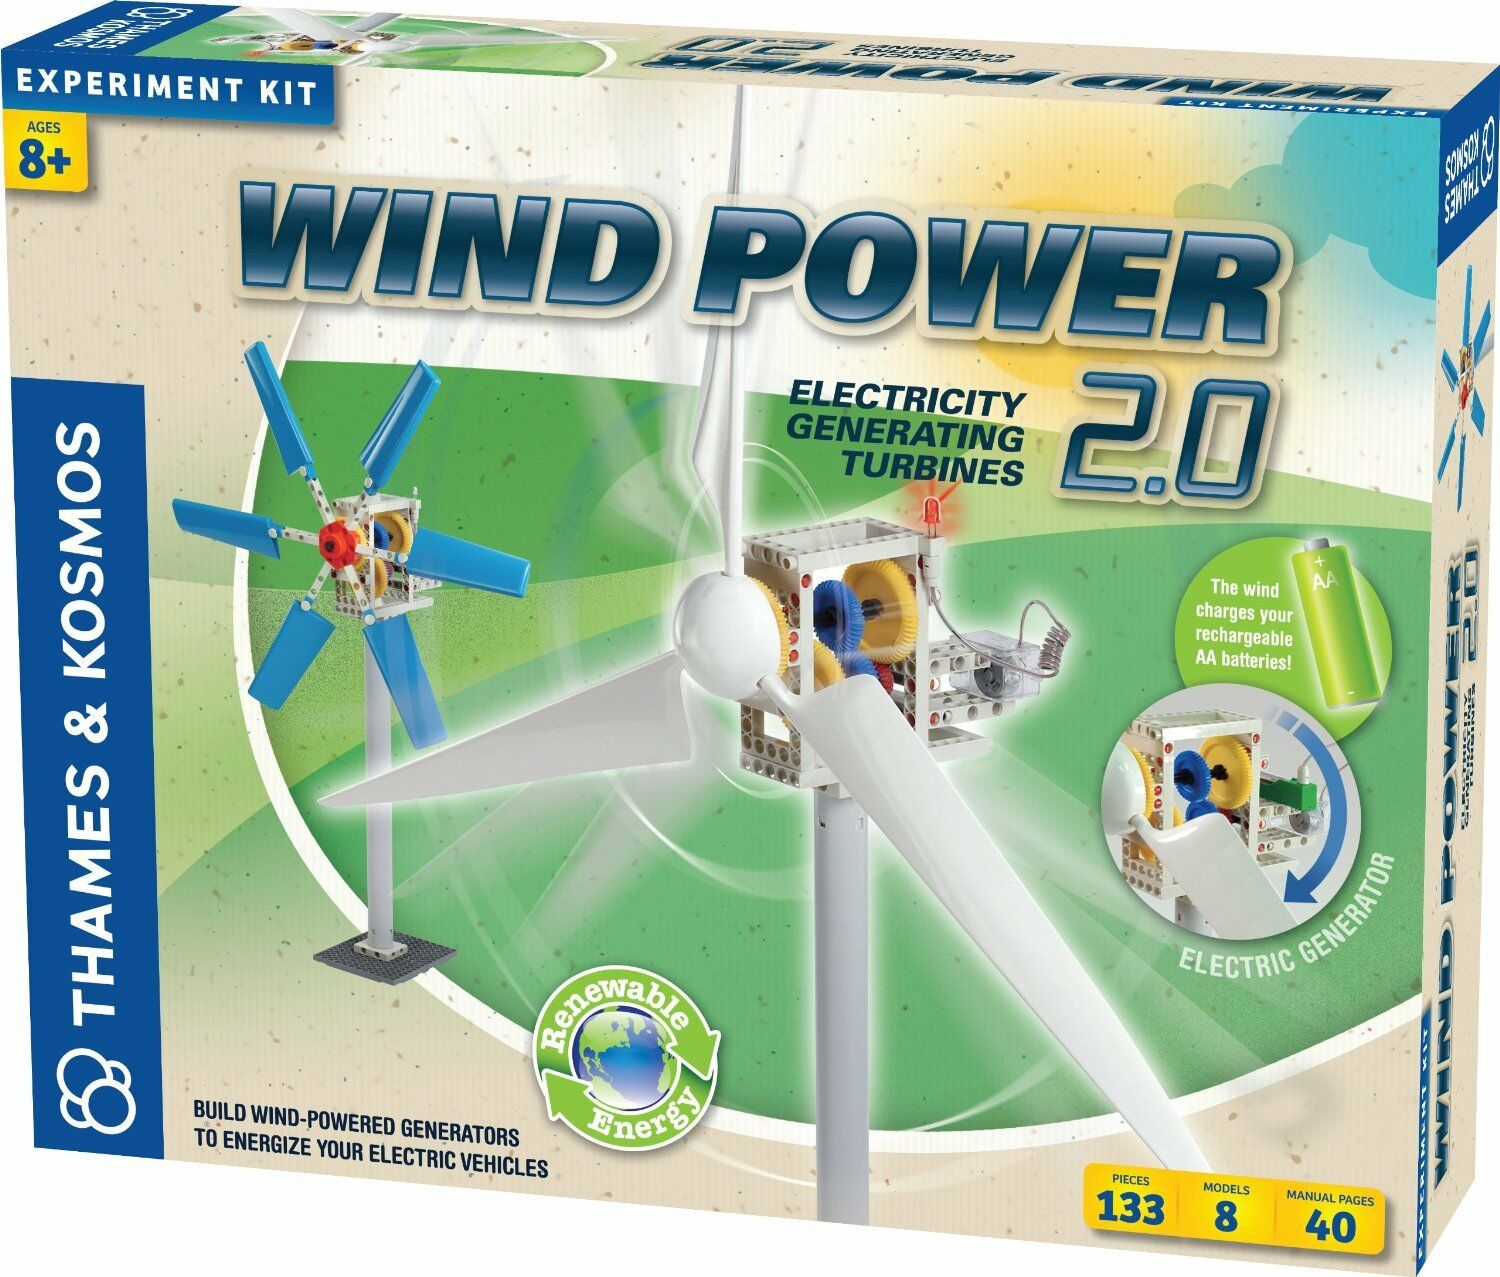 Thames and Kosmos 555002 Wind Power 2.0 Experiment Kit